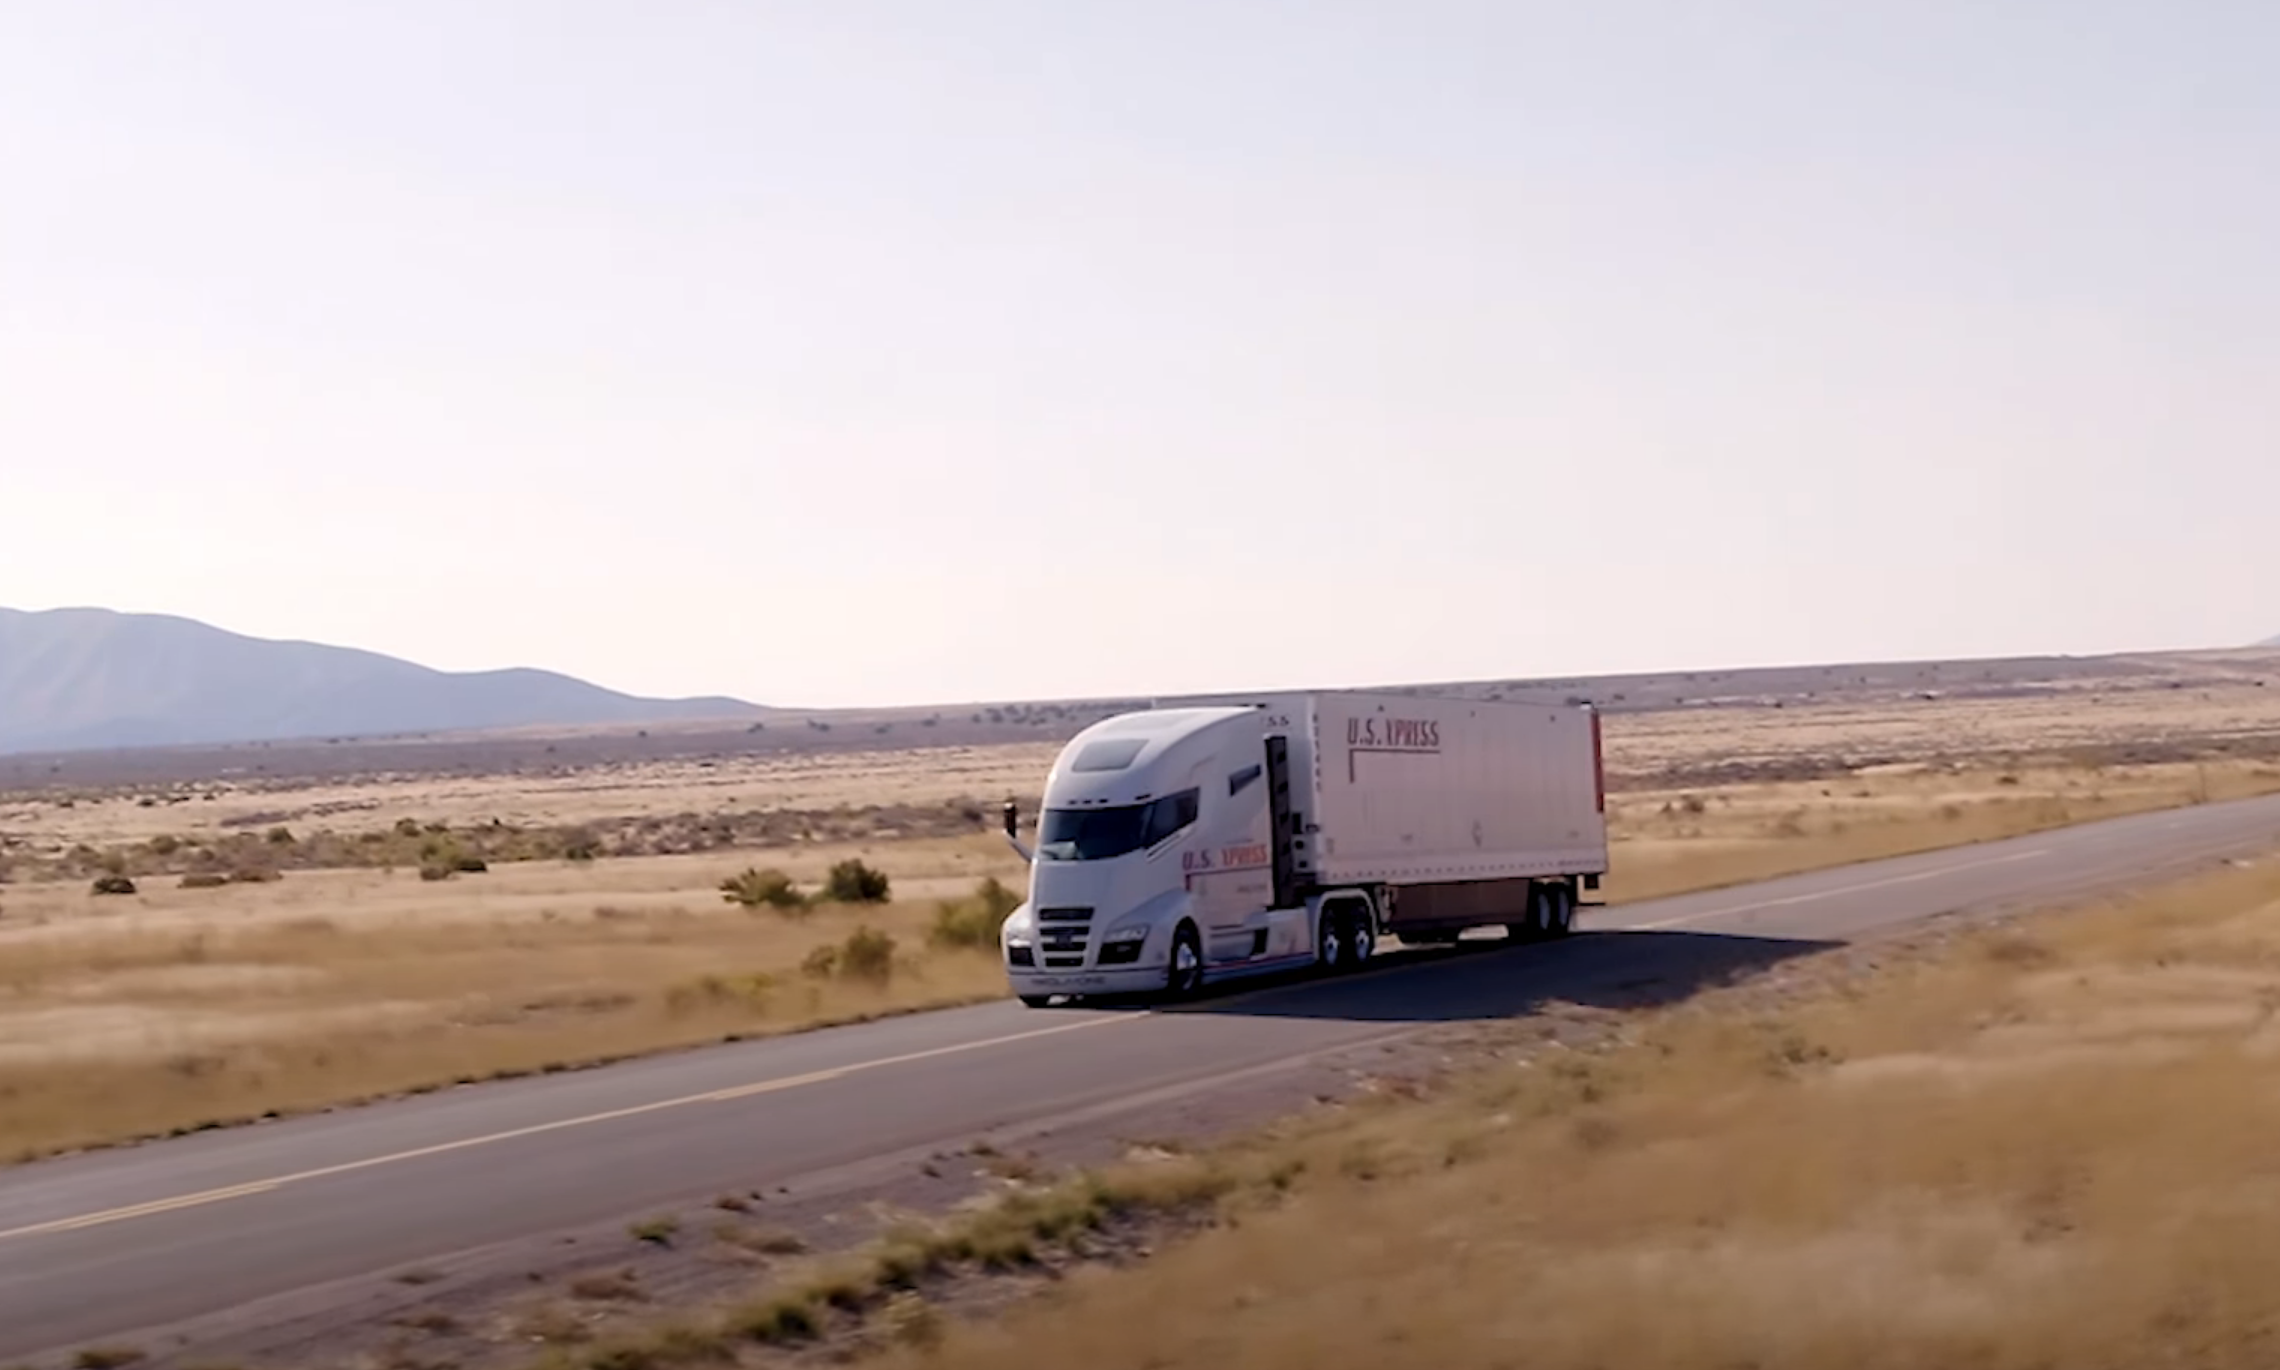 A 2018 Nikola video showed the Nikola One prototype rolling down a shallow hill in Utah. Nikola now says it never claimed the truck was driving under its own power.